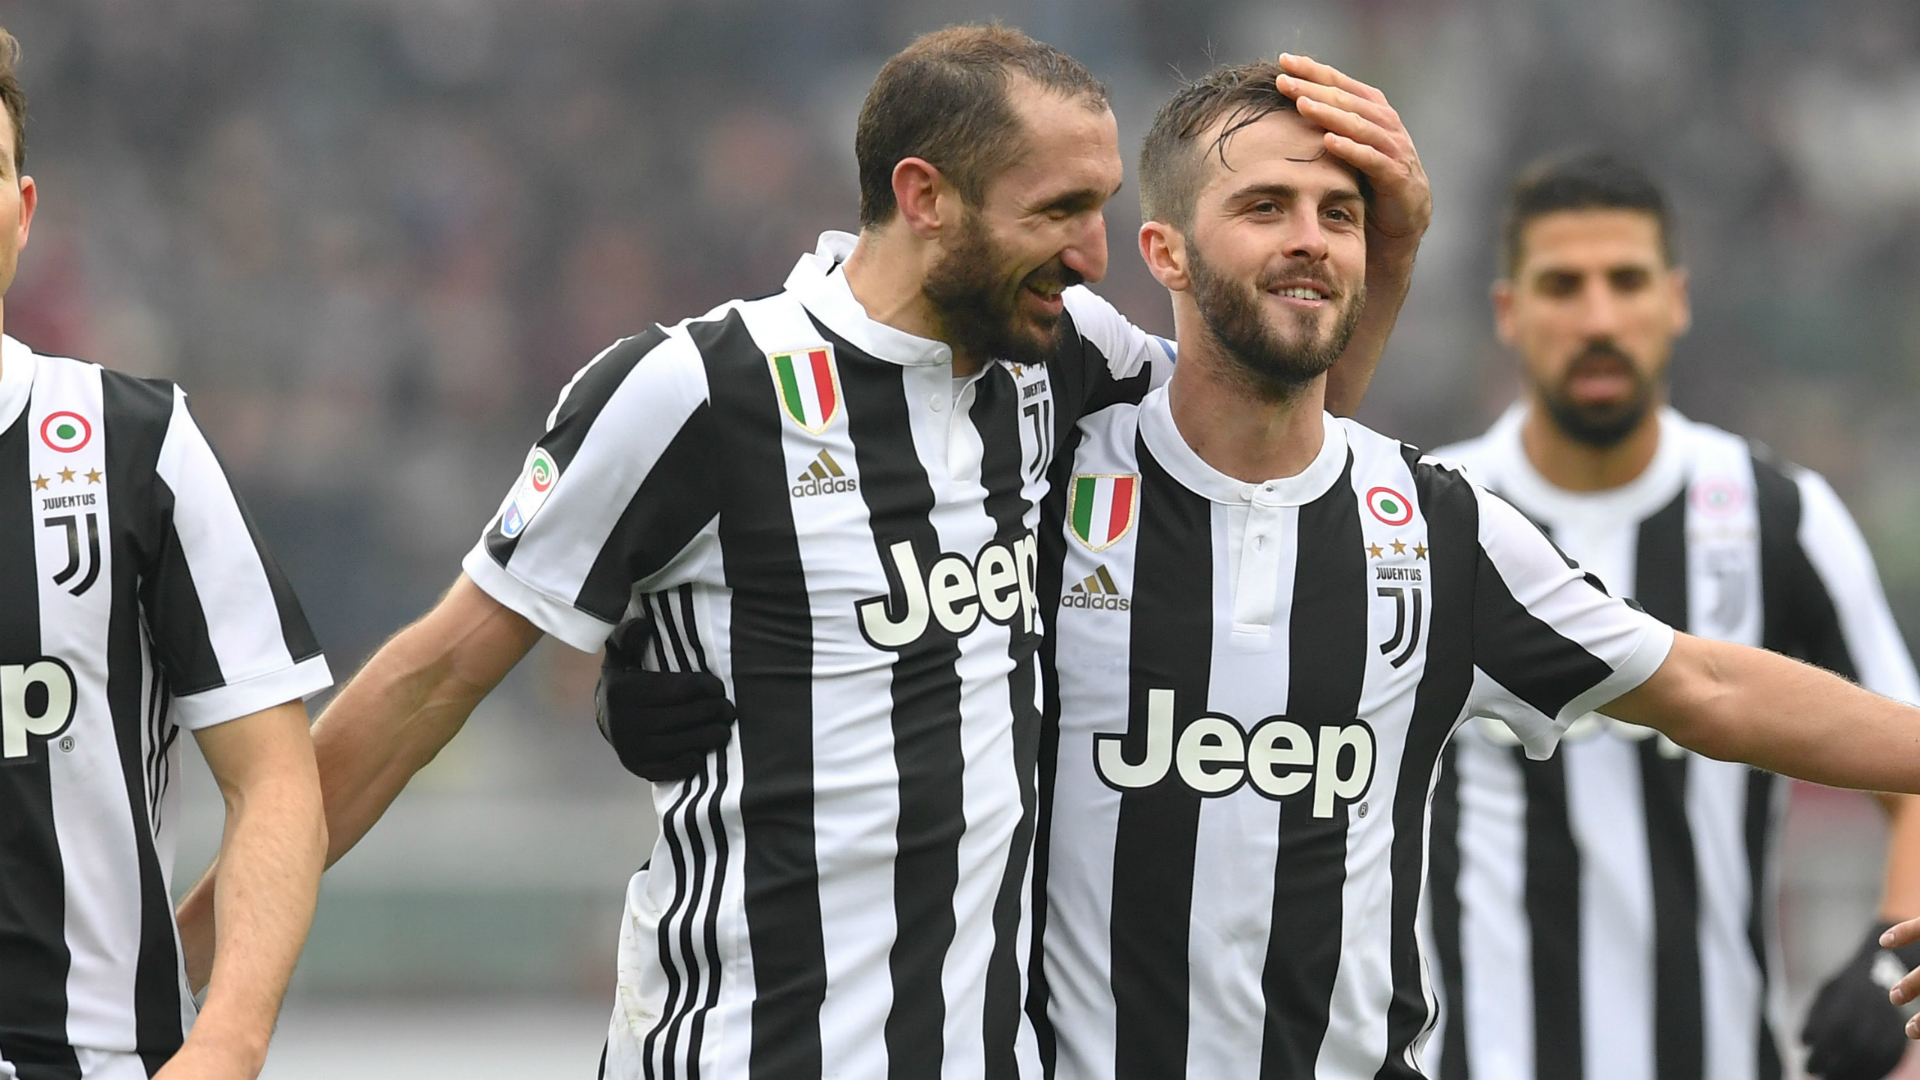 Juventus crowned Serie A champions for seventh straight season